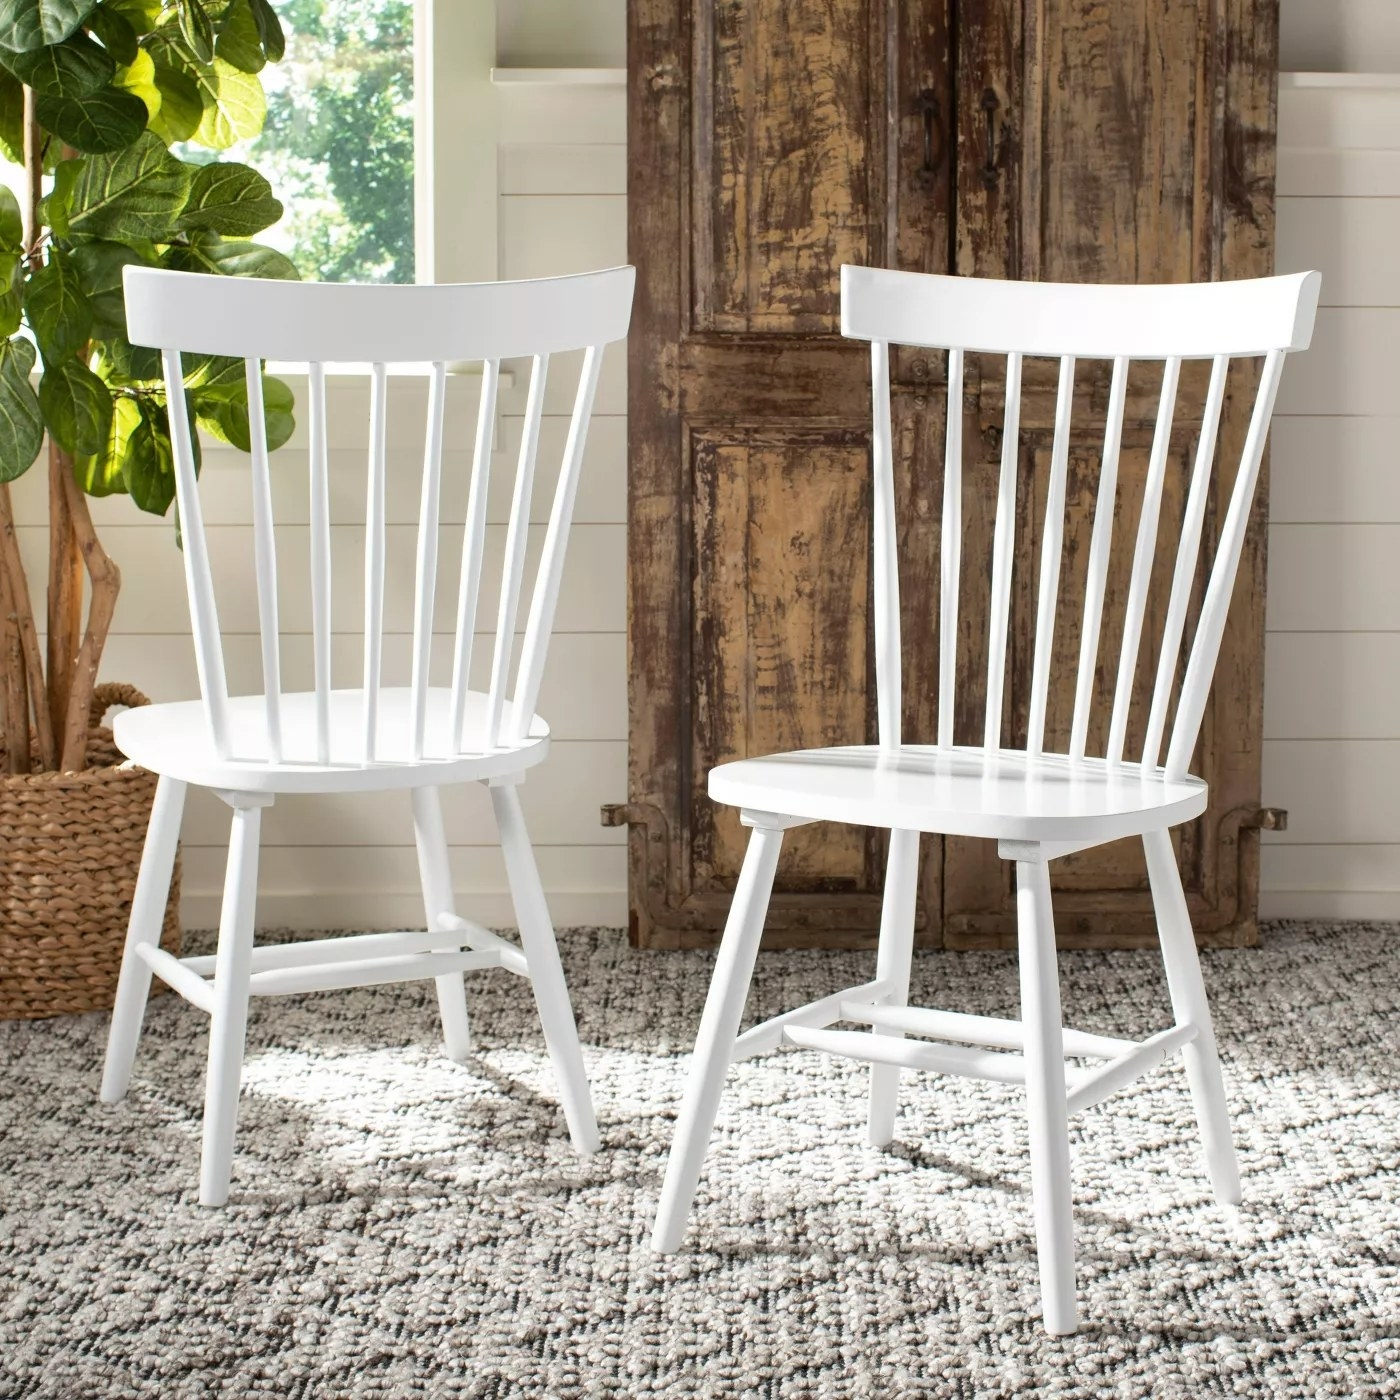 The dining chairs in white